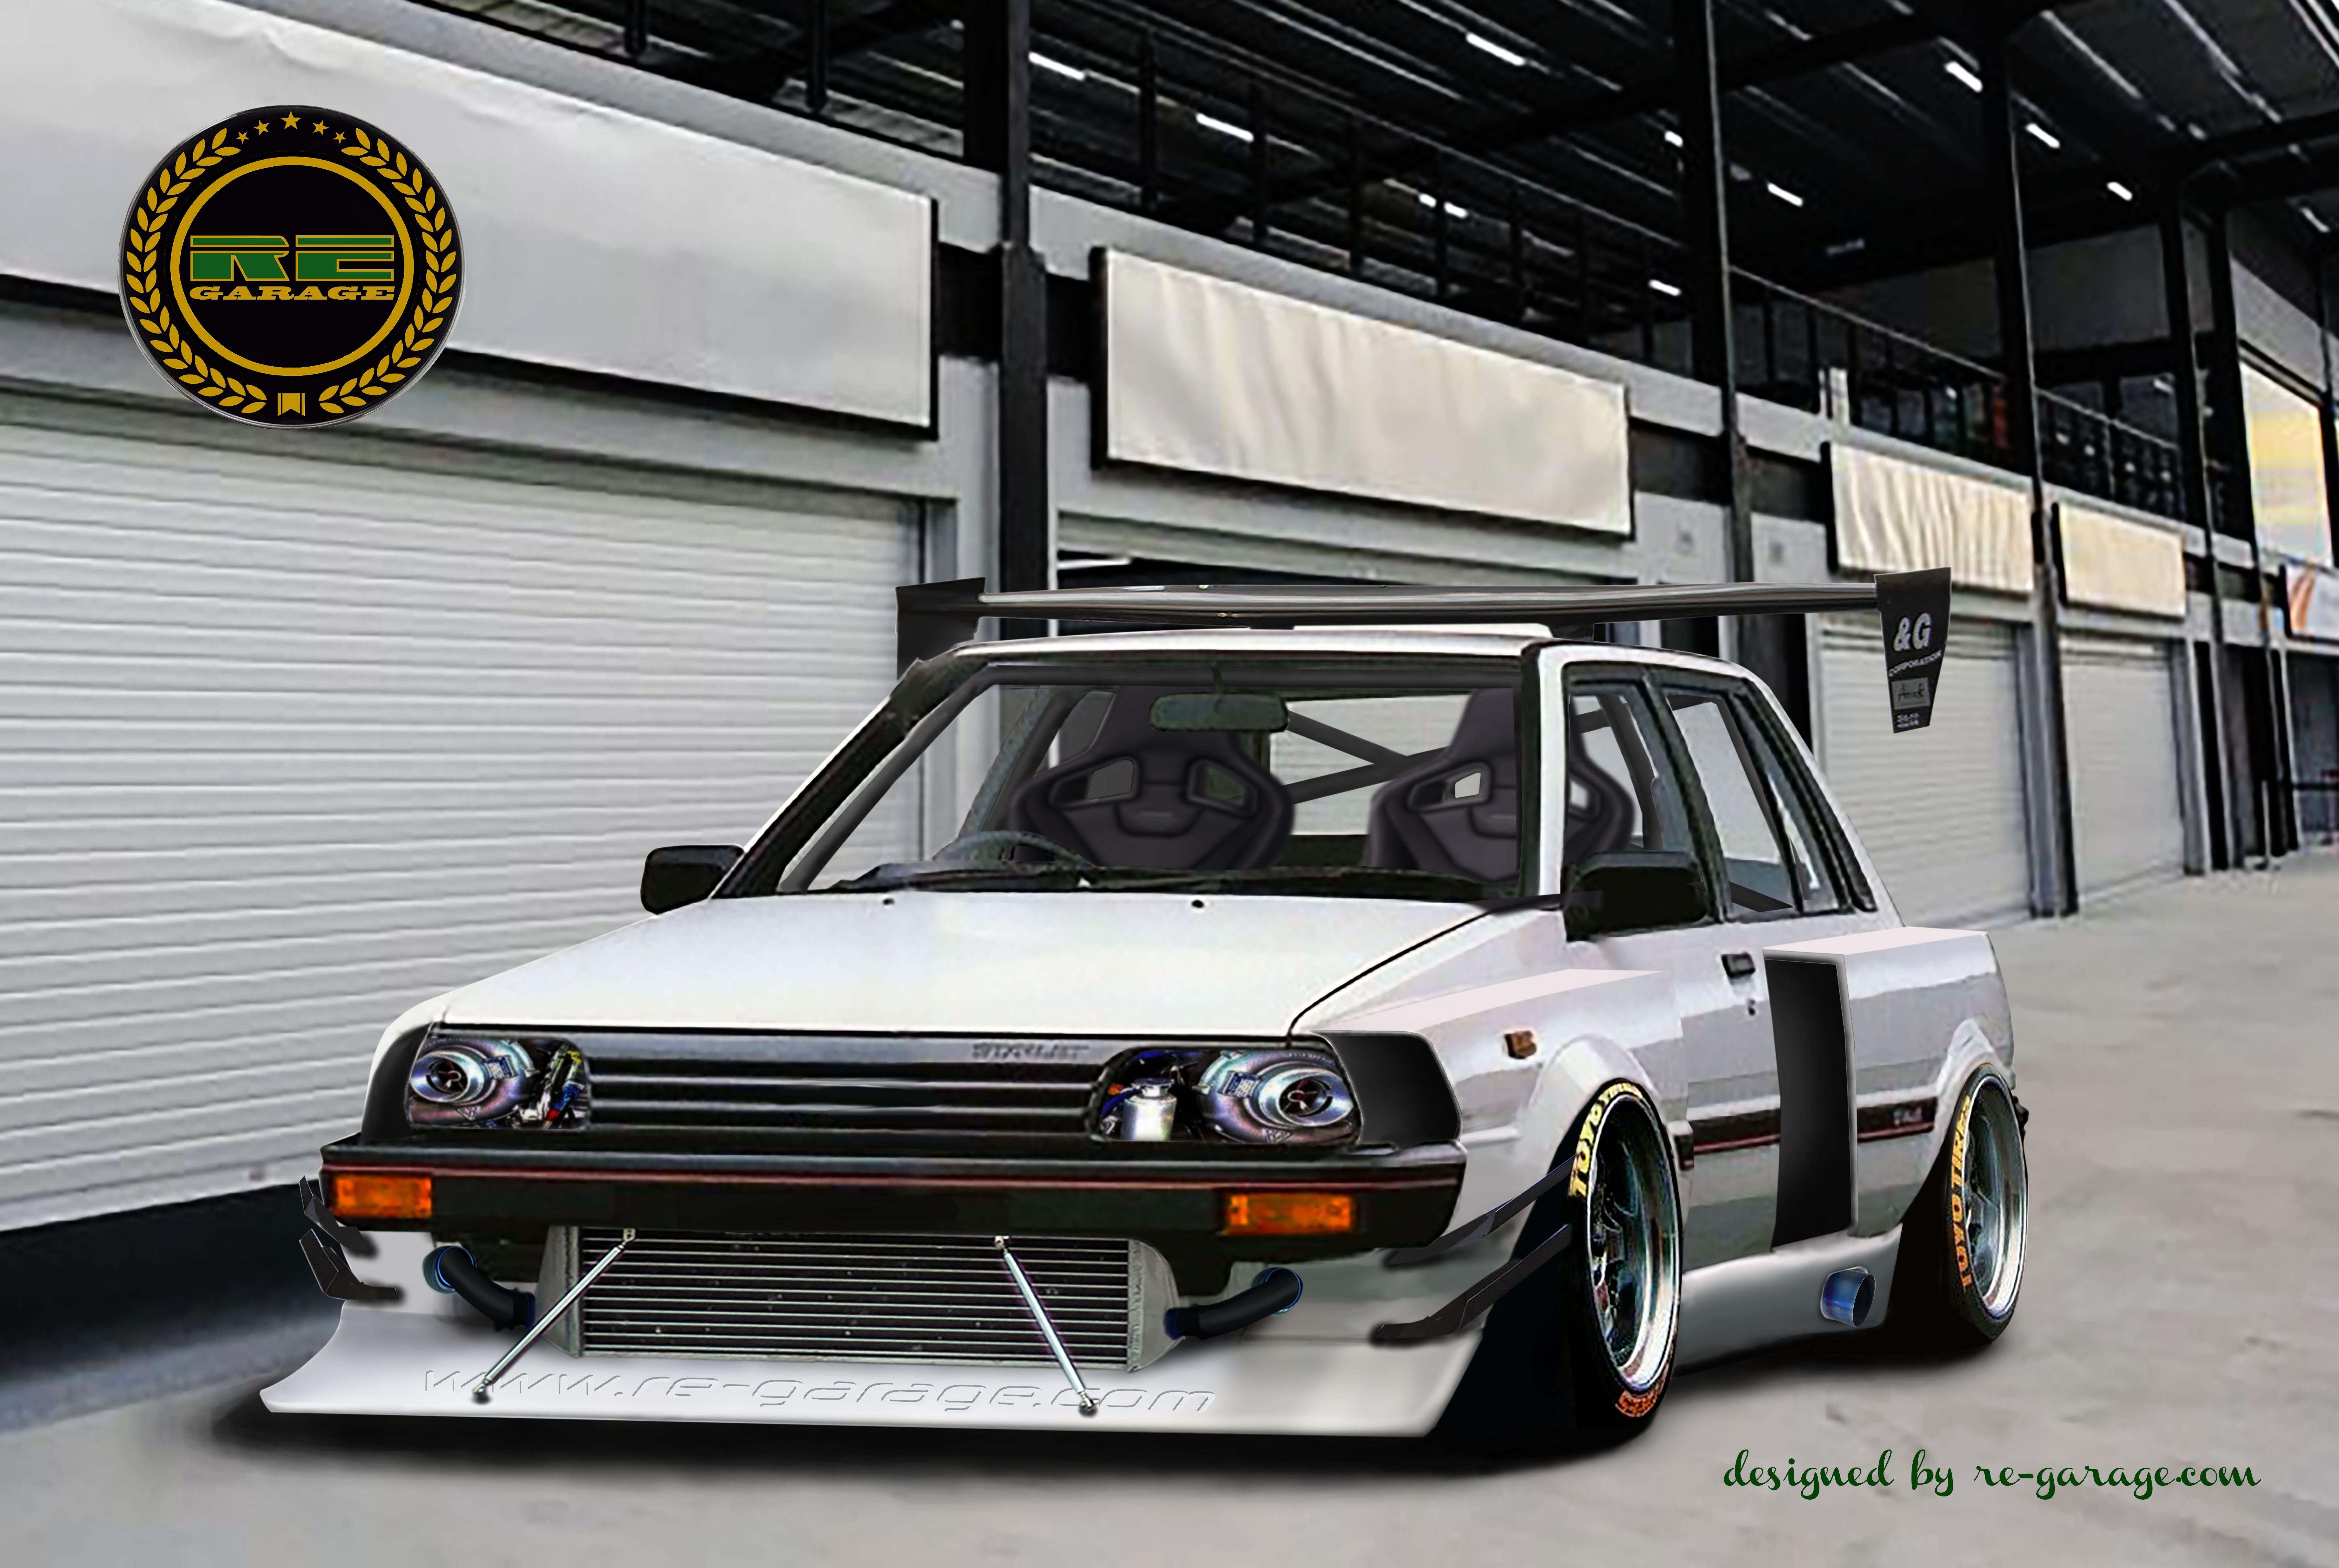 toyota starlet ep71 by re-garage-com